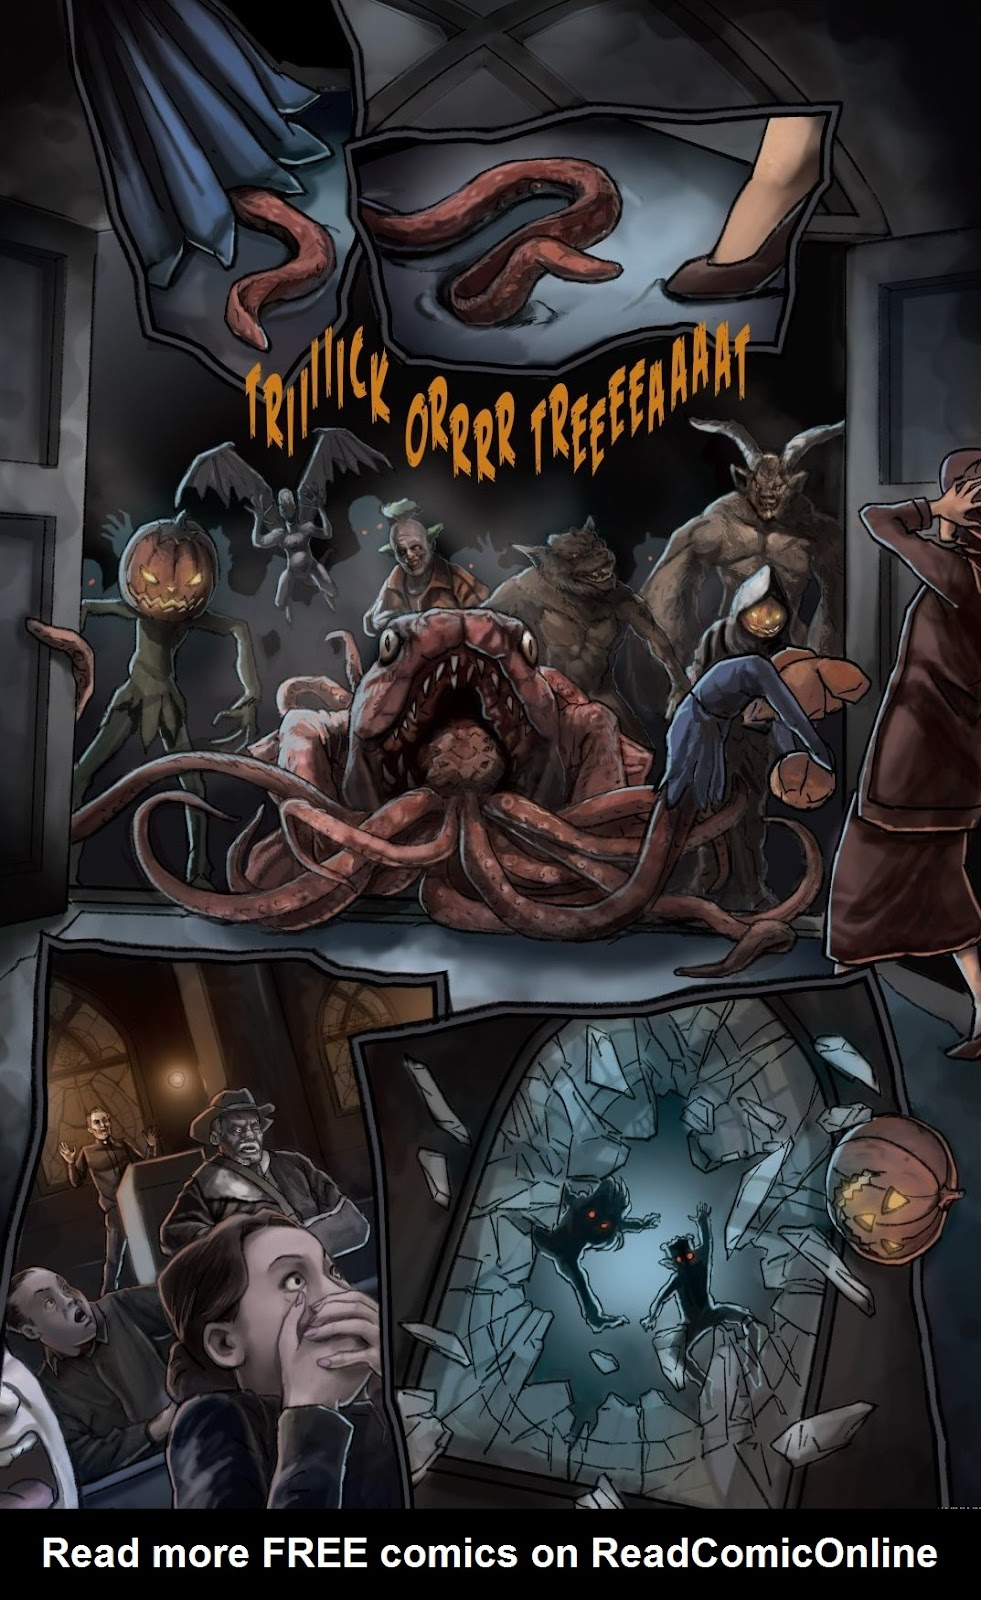 Read online Trick 'r Treat: Days of the Dead comic -  Issue # TPB - 126